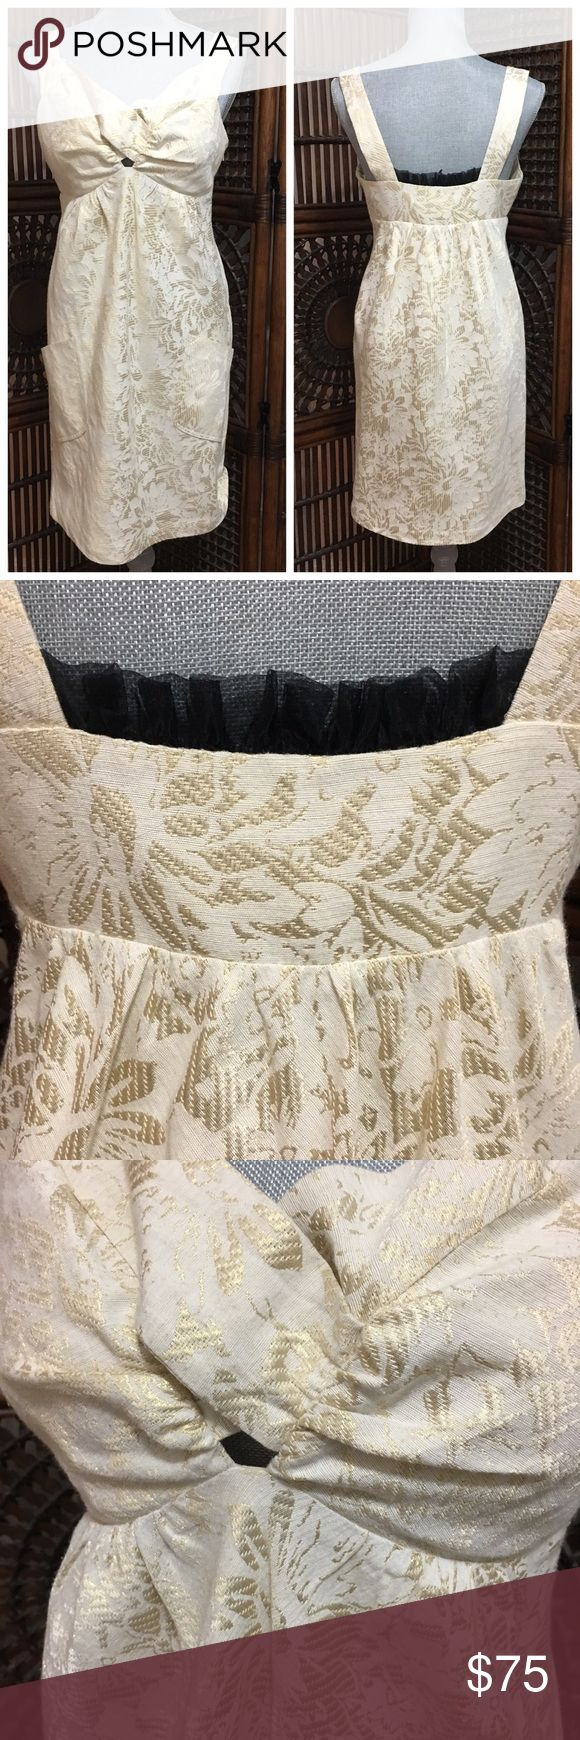 """BCBG gold and cream cocktail dress Beautiful cream and gold floral dress by BCBG. Fully lined. Side zipper. Amazing details! Black lace detail between straps on back and small keyhole opening on front. Front pockets. Never worn but there is one small, light smudge on the front of the dress (see pic). Length is approx 35.5"""" from shoulder to hem BCBG Dresses"""